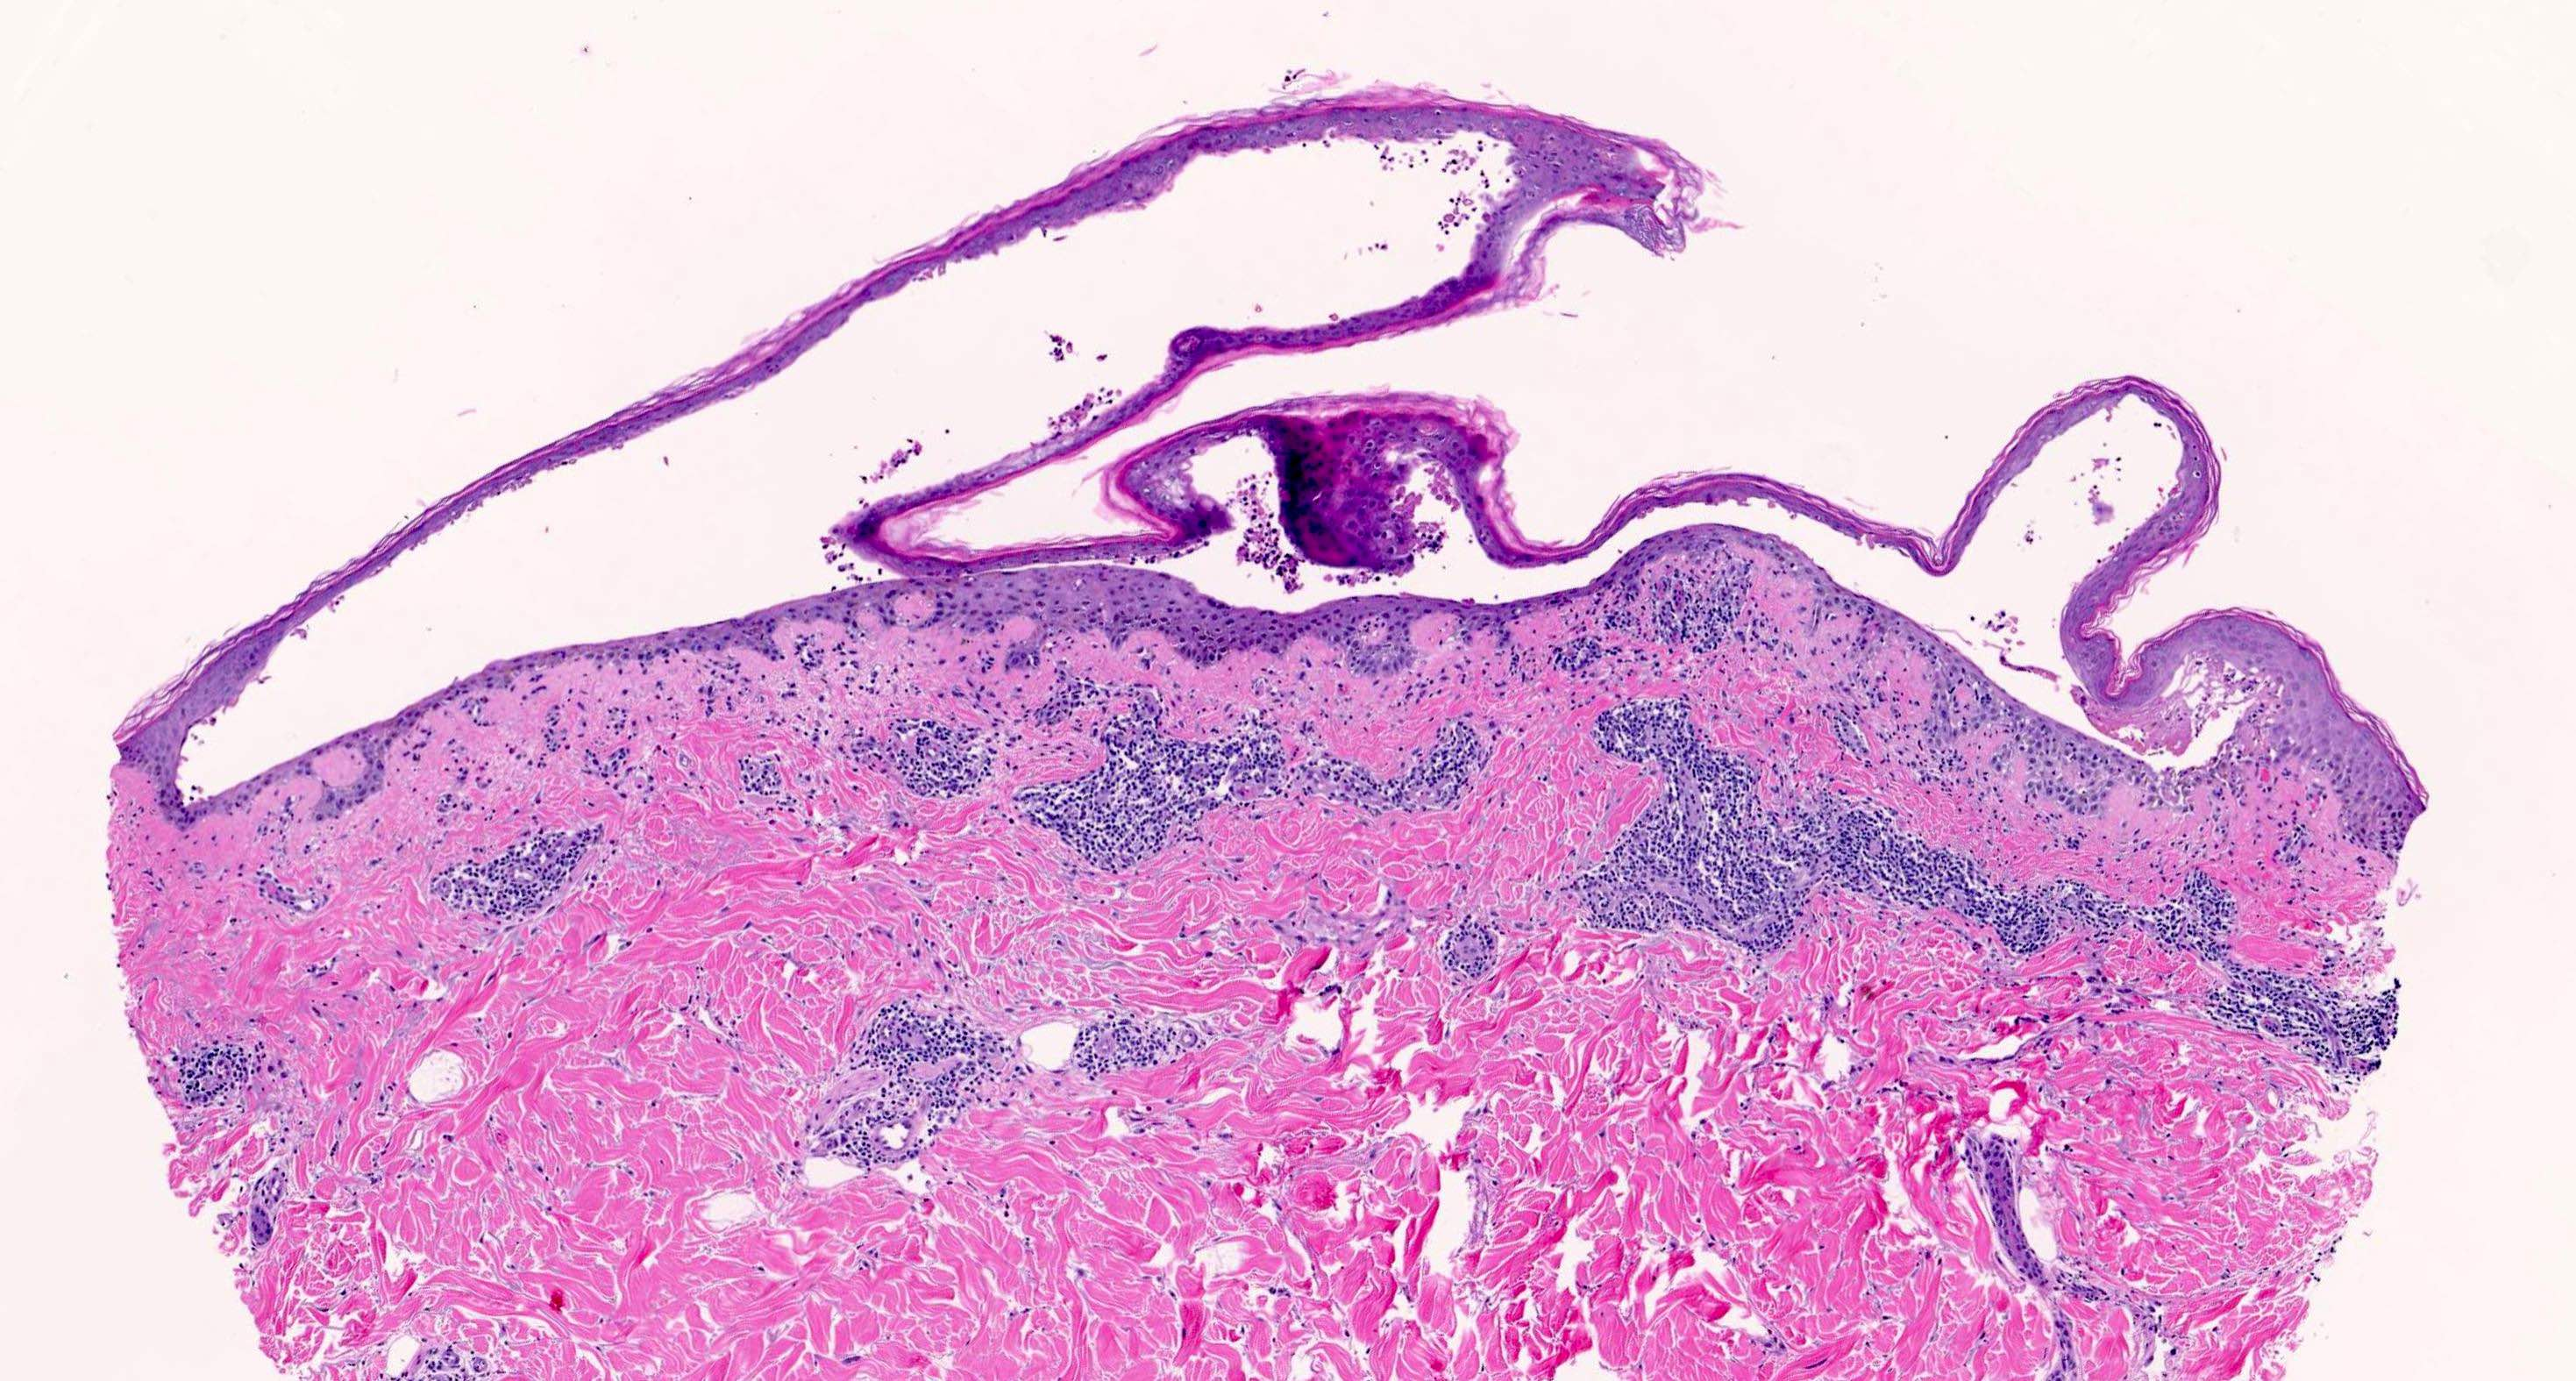 Blister with lichenoid inflammation